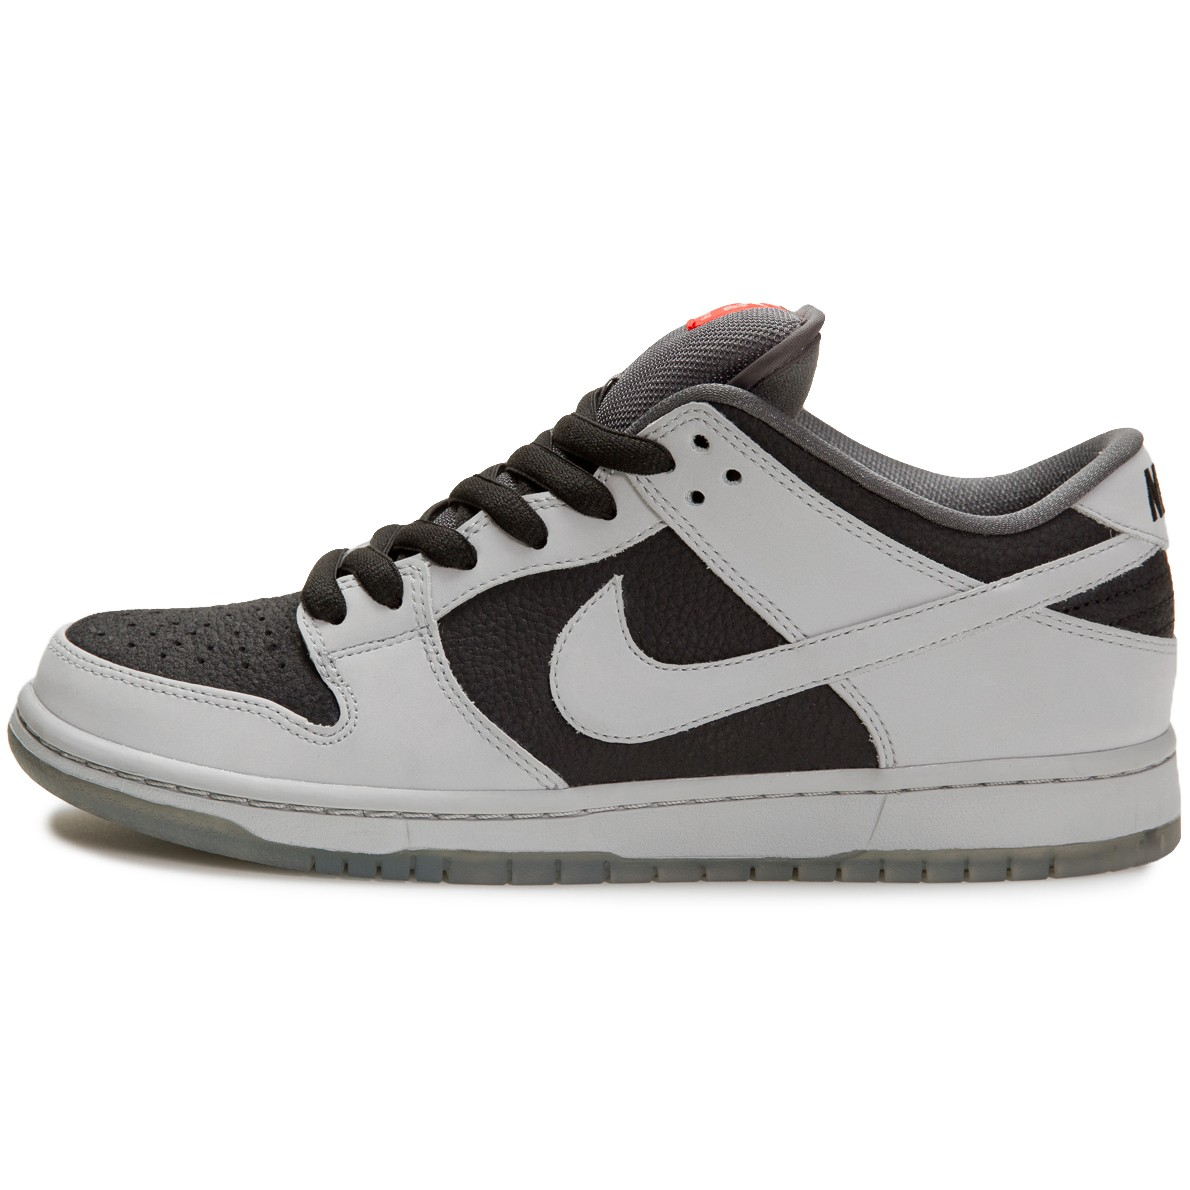 size 40 54d34 bee72 Nike SB x Atlas 35mm Dunk Low Premium Shoes - Wolf Grey Black Red